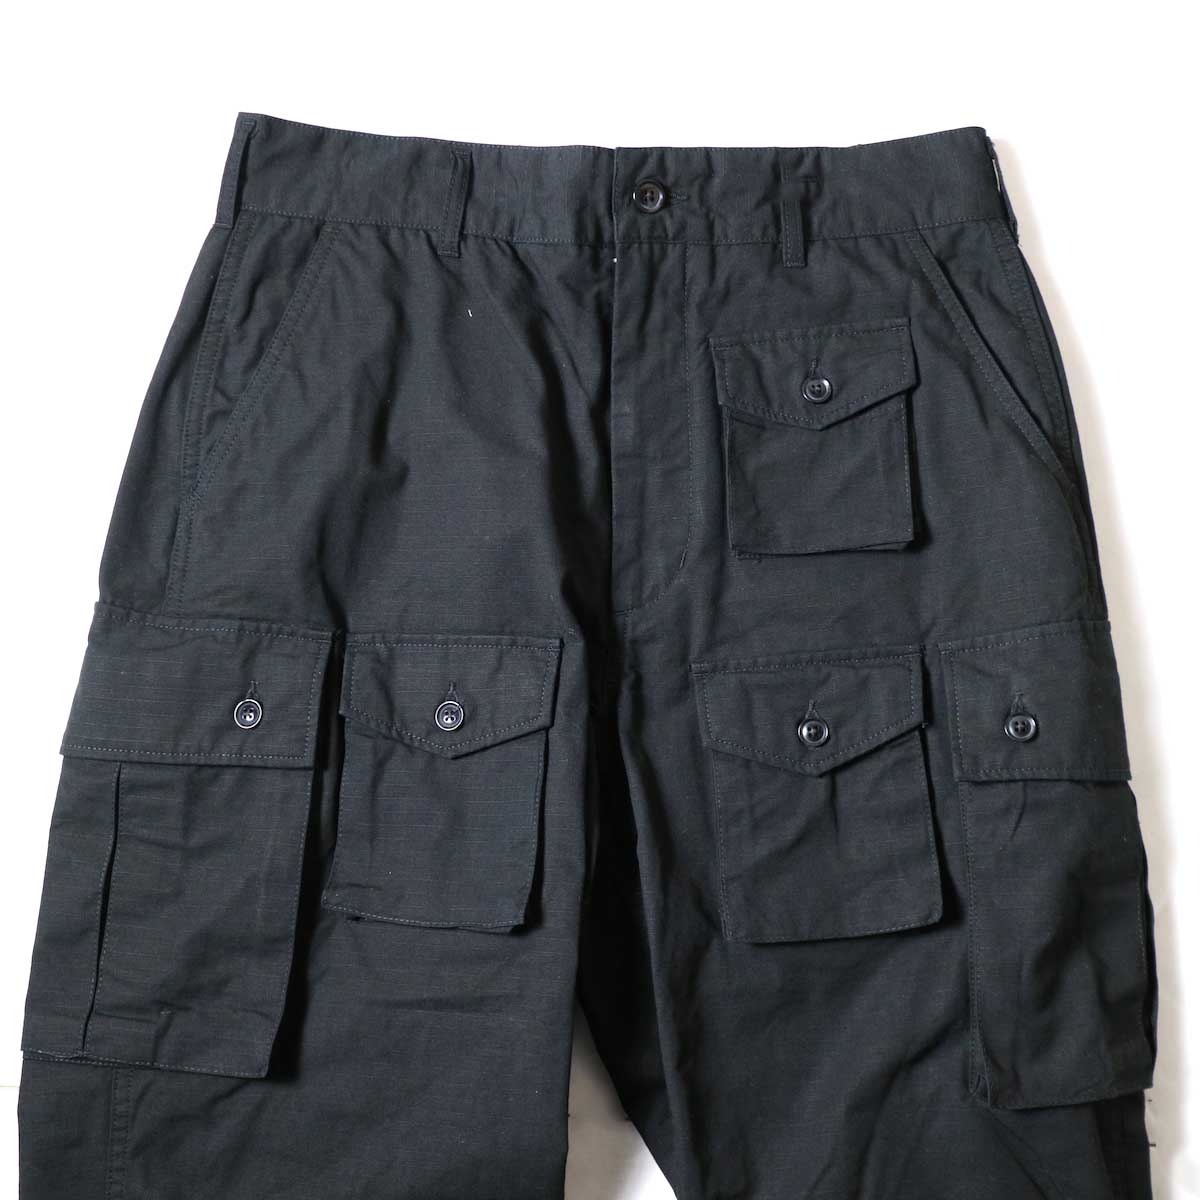 ENGINEERED GARMENTS / FA Pant - Cotton Ripstop (Black)ウエスト